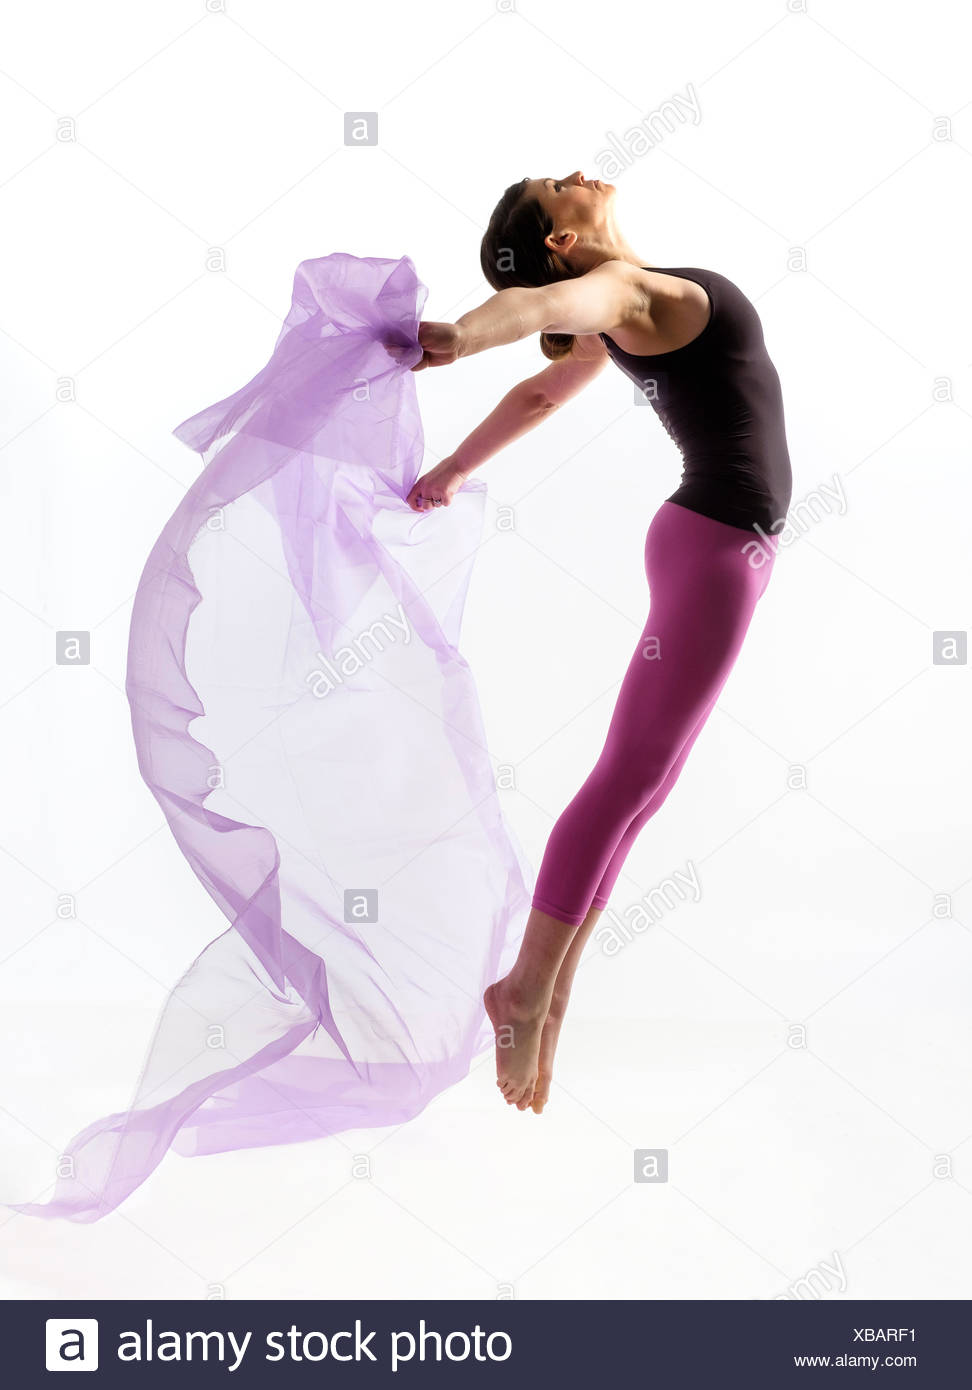 Woman with sheer fabric jumping - Stock Image